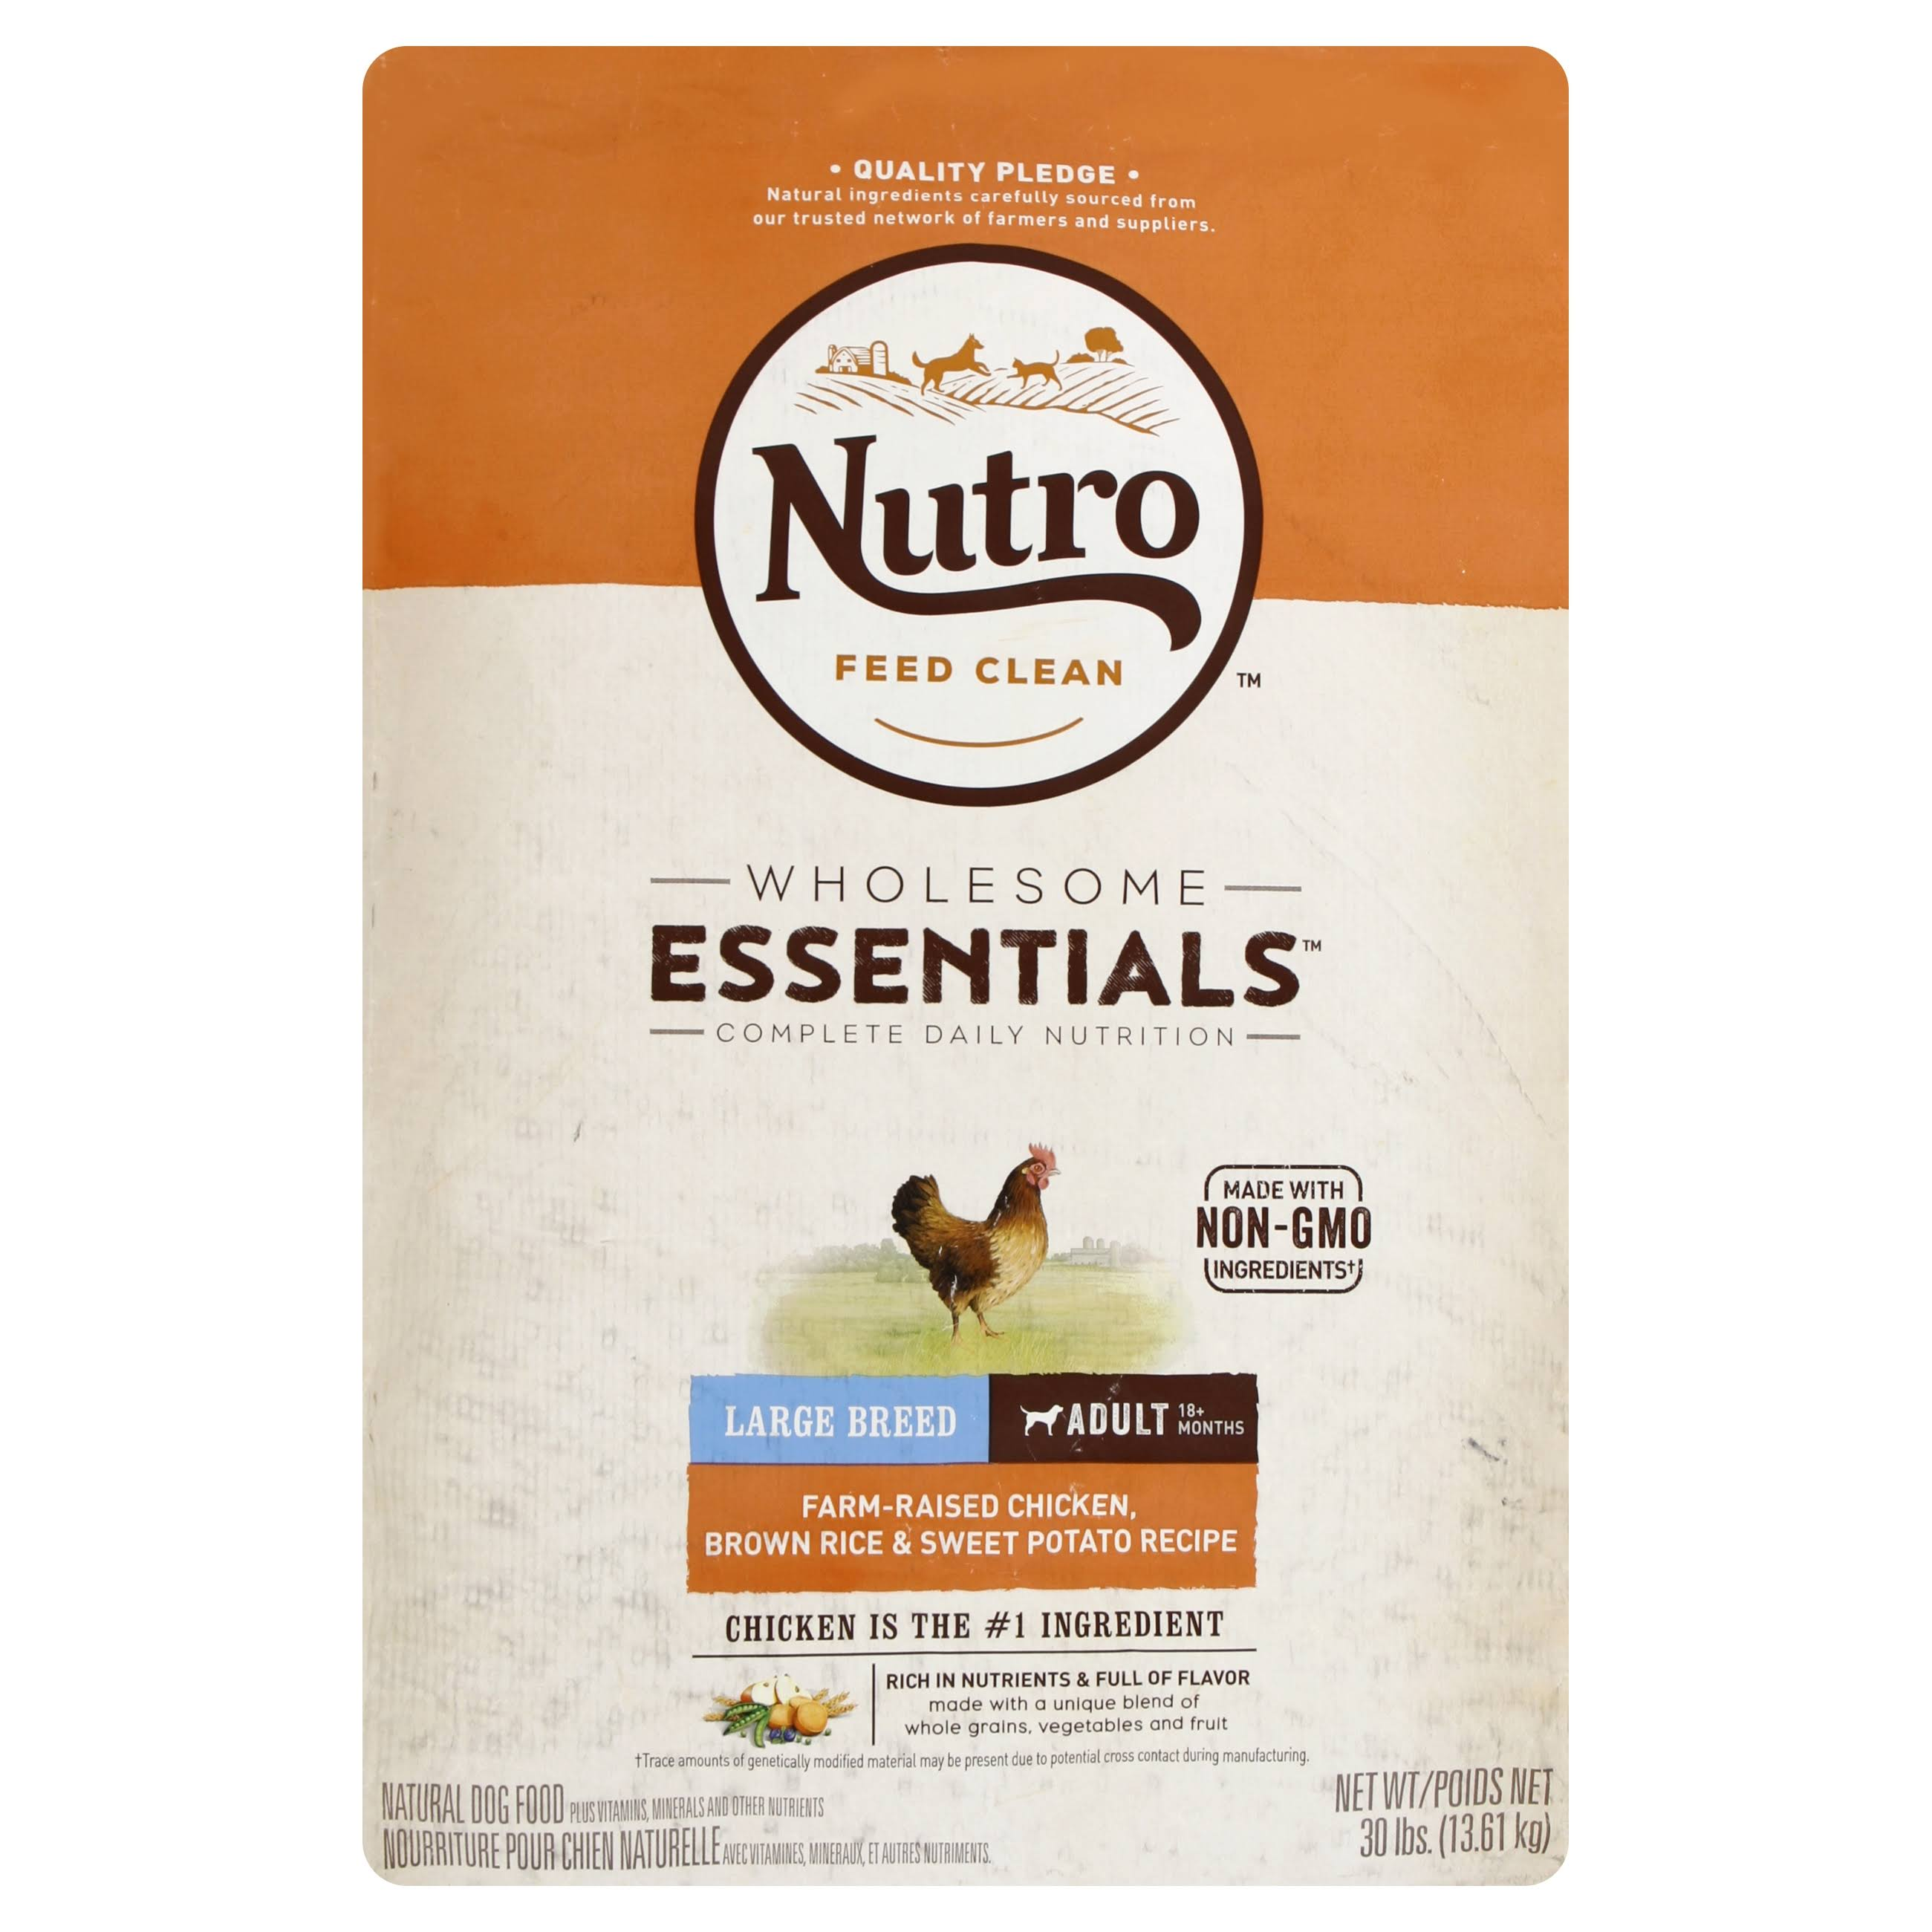 Nutro Large Breed Adult Dog Food - Chicken, Whole Brown Rice and Oatmeal, 30lbs